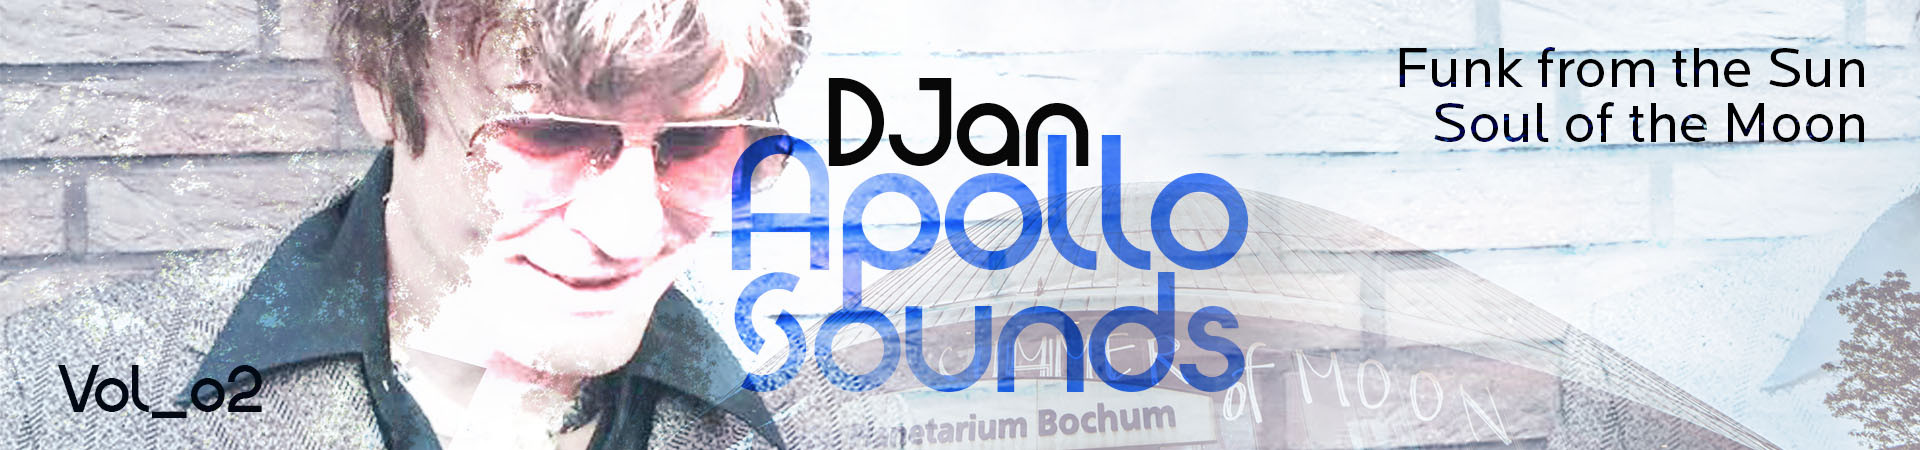 ApolloSounds Header 02